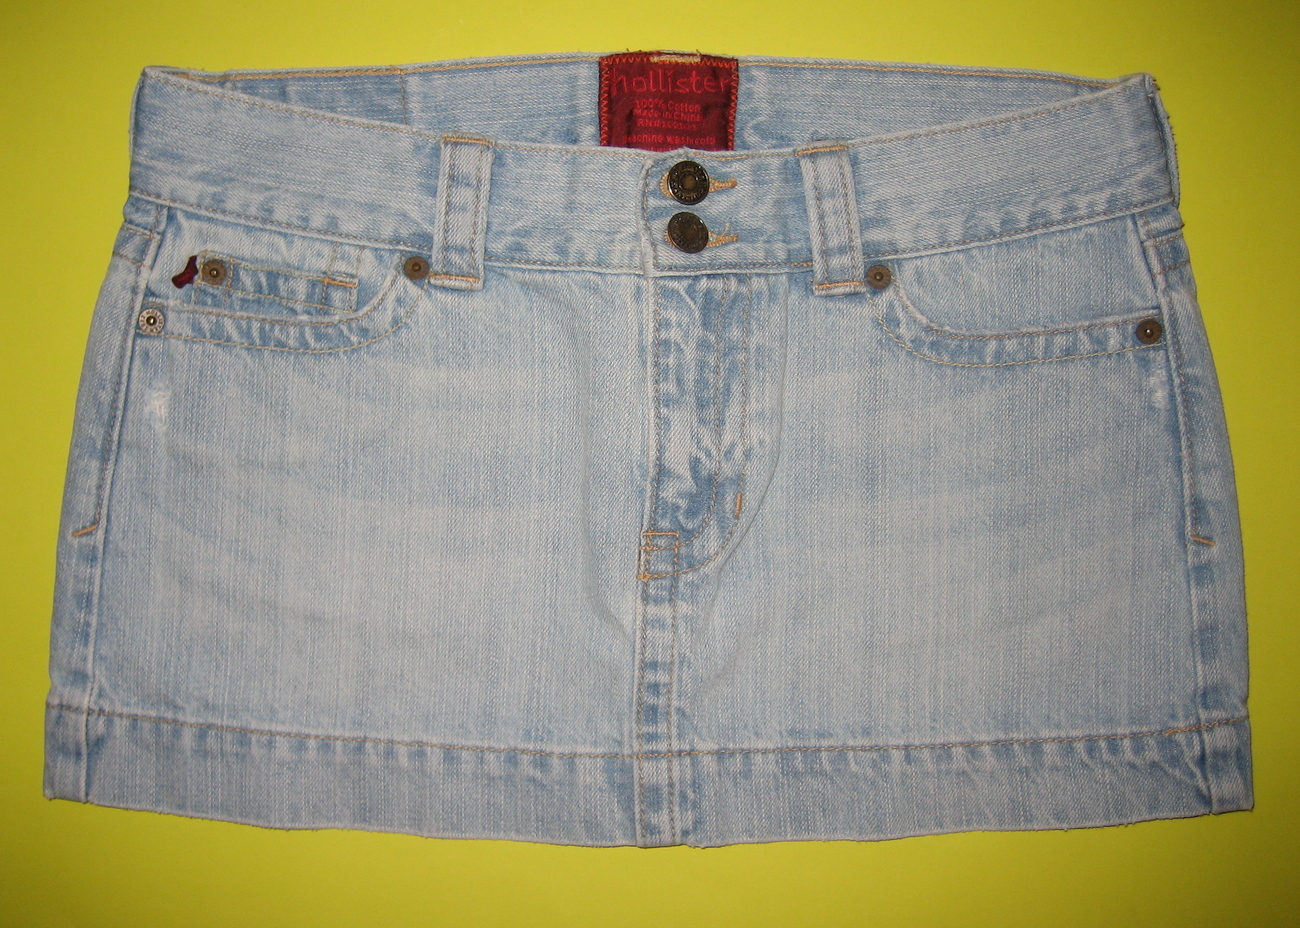 Hollister denim jean mini skirt sz 5